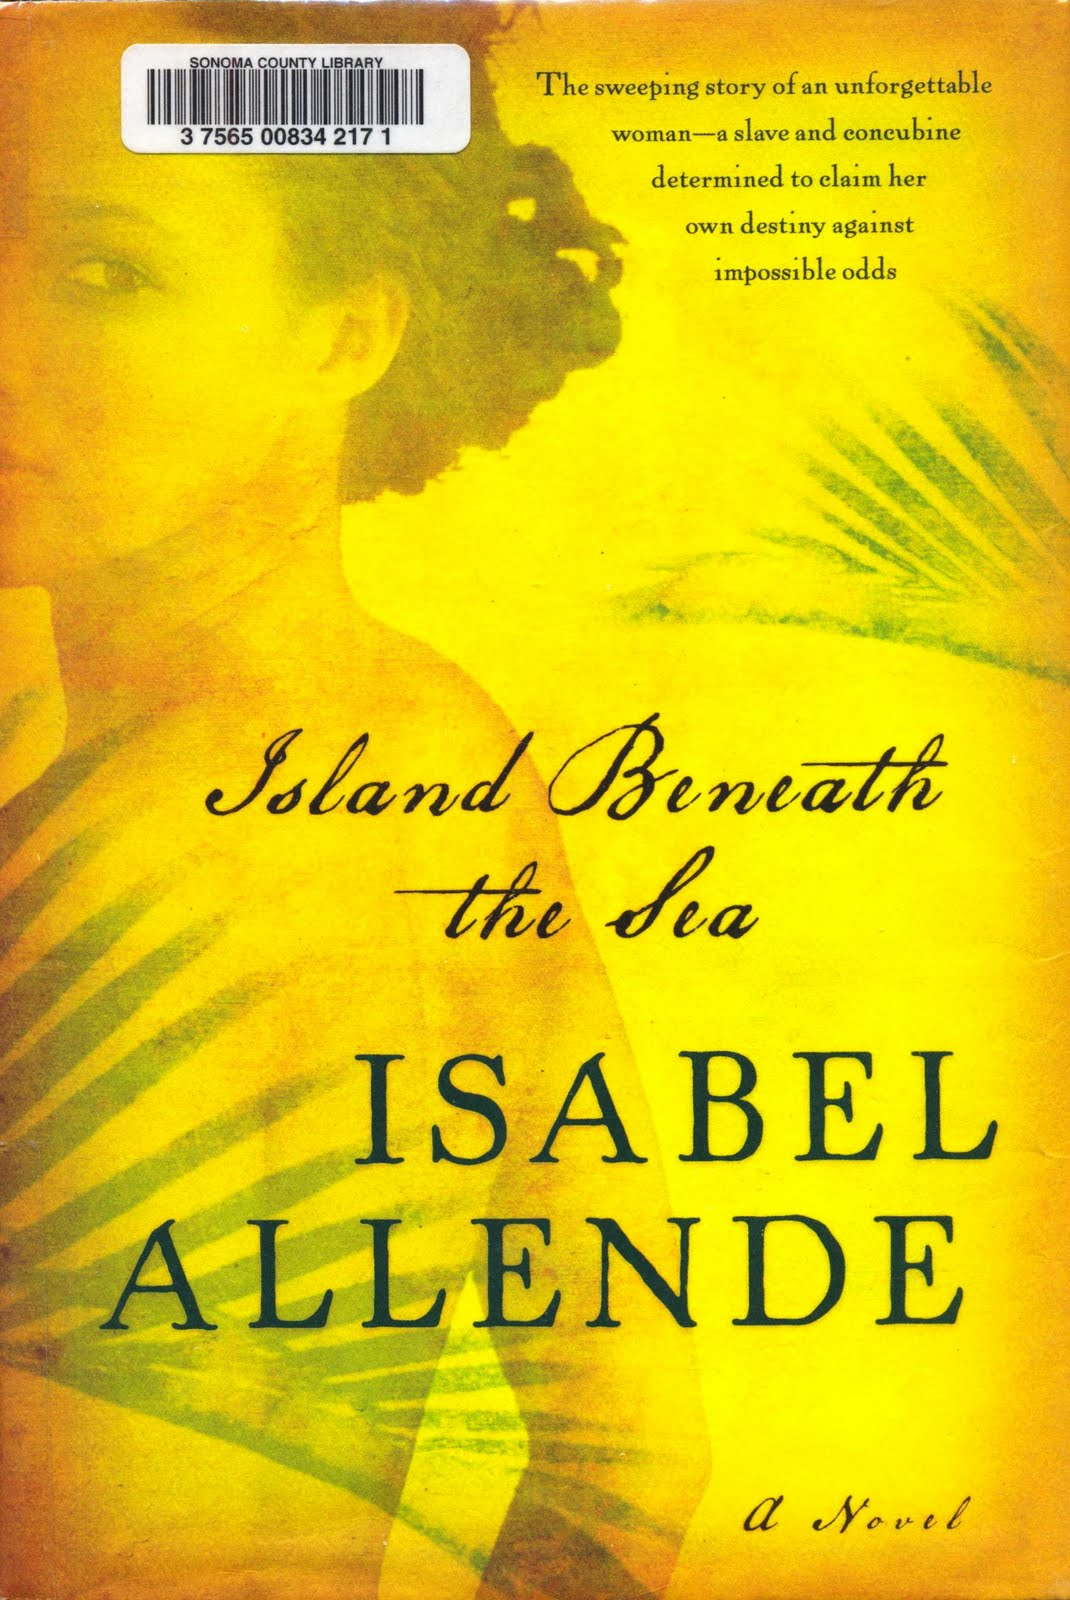 isabel allendes two words Isabel allende is a chilean writer allende, whose works sometimes contain  aspects of the  of love and shadows (1985) de amor y de sombra eva luna ( 1987) eva luna two words (1989) dos palabras the stories of eva luna ( 1989).